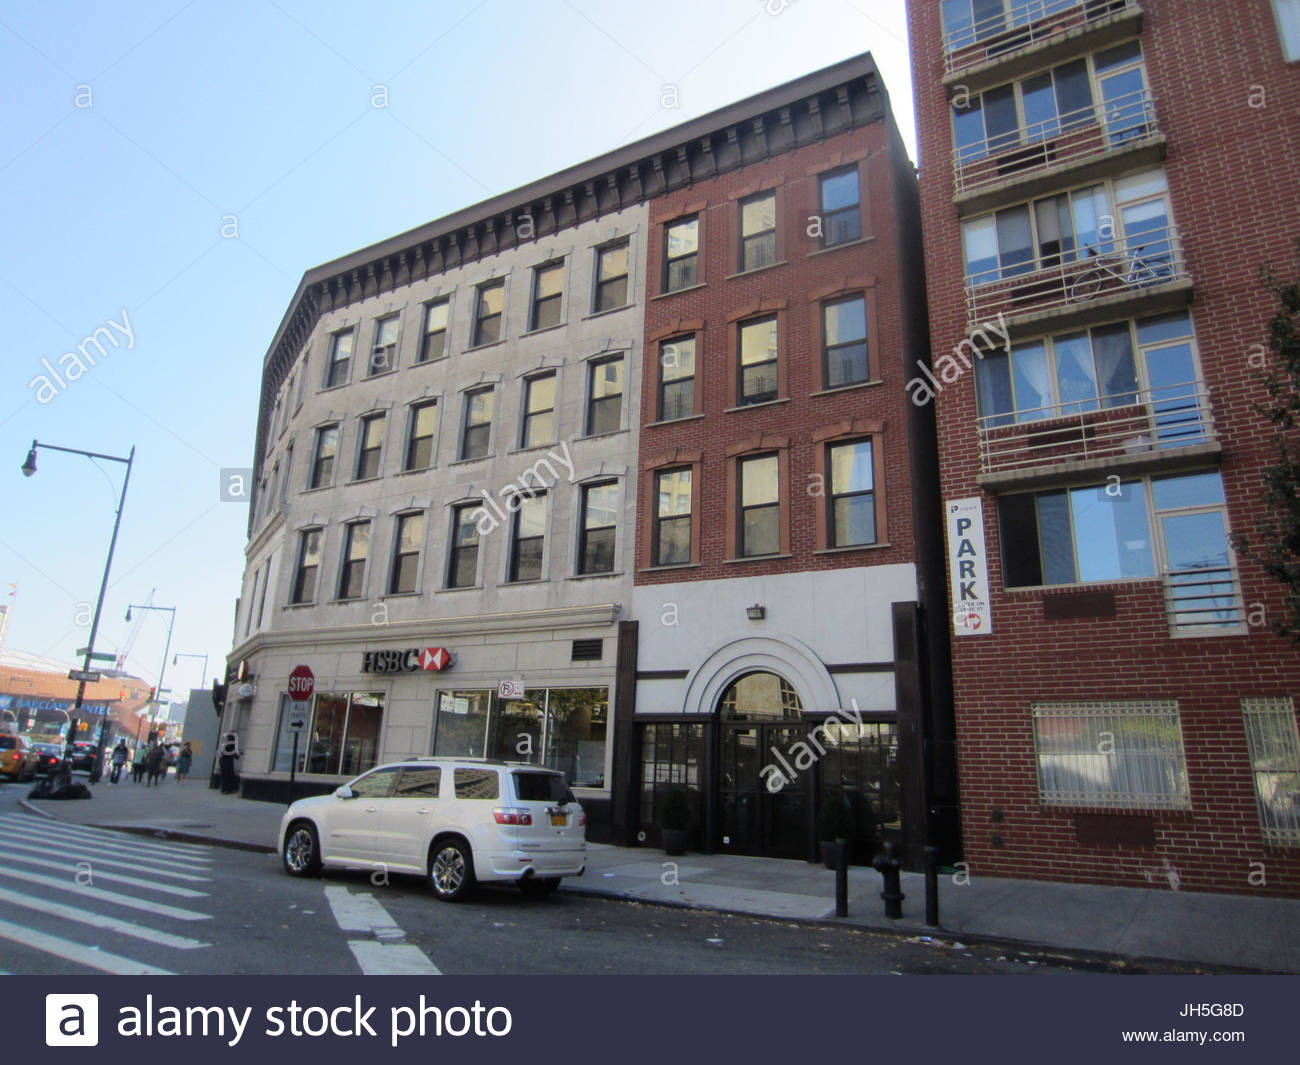 Jay zs old home the brooklyn address that jay z names as his the brooklyn address that jay z names as his stash spot in the blueprint 3 track empire state of mind he raps i used to cop in harlem malvernweather Image collections